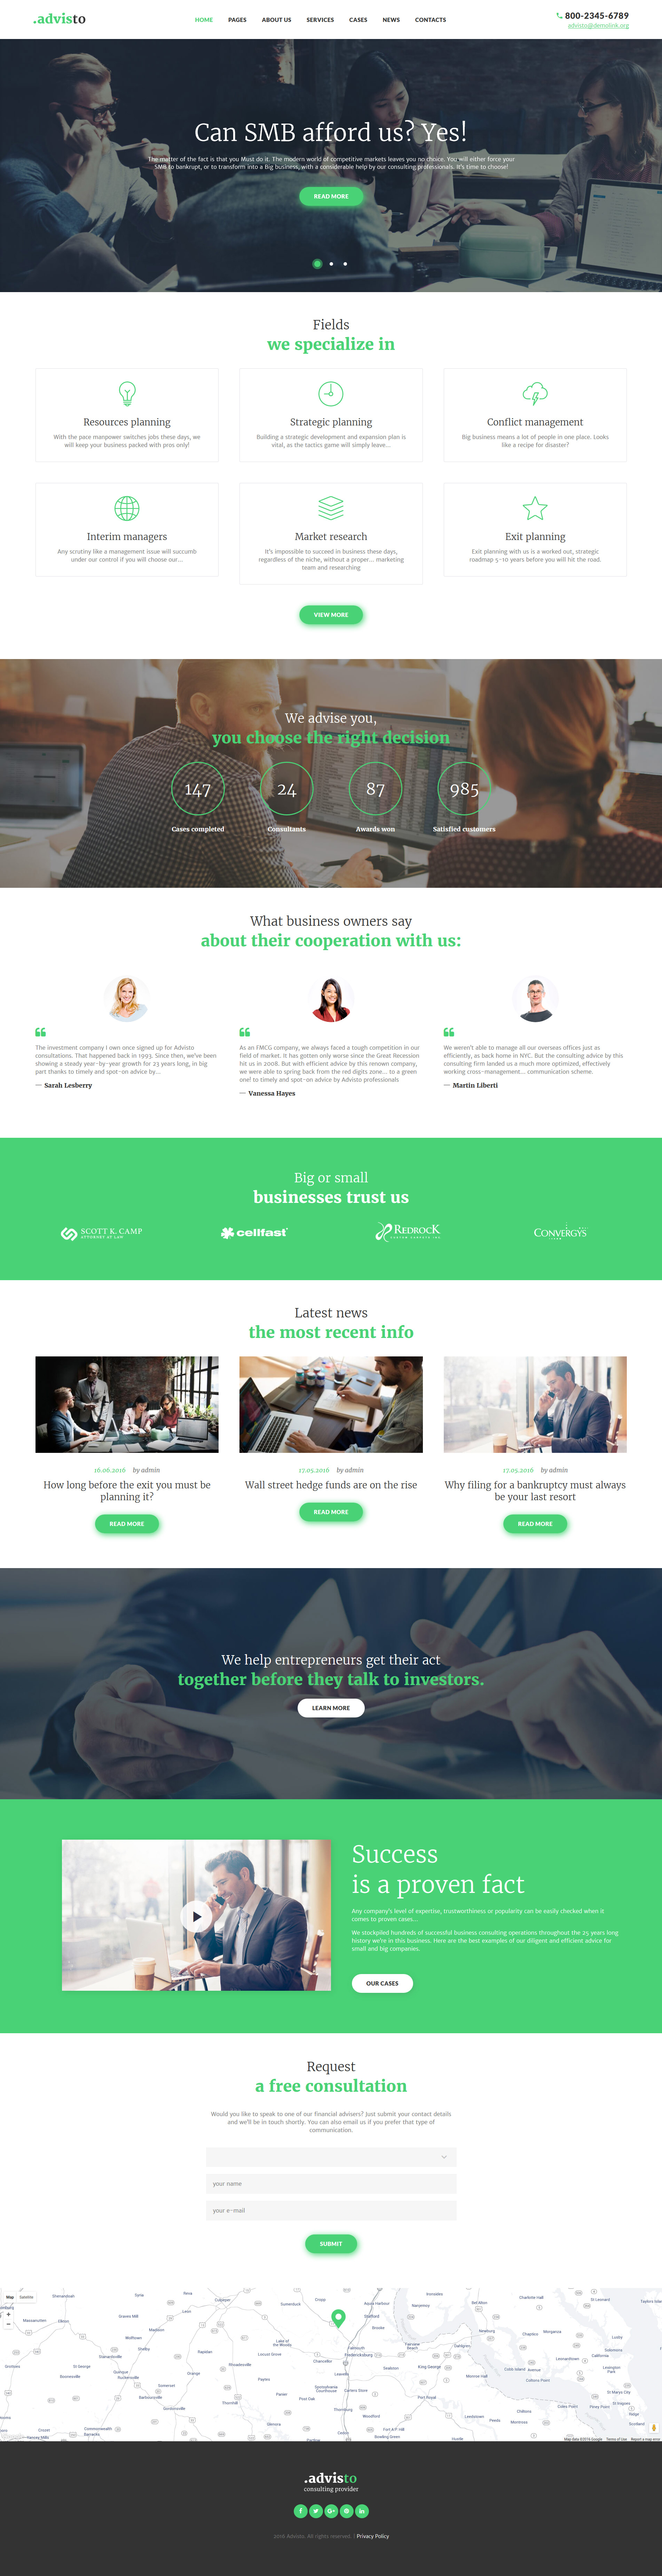 Advisto - Financial Advisor Consultancy WordPress Theme - screenshot